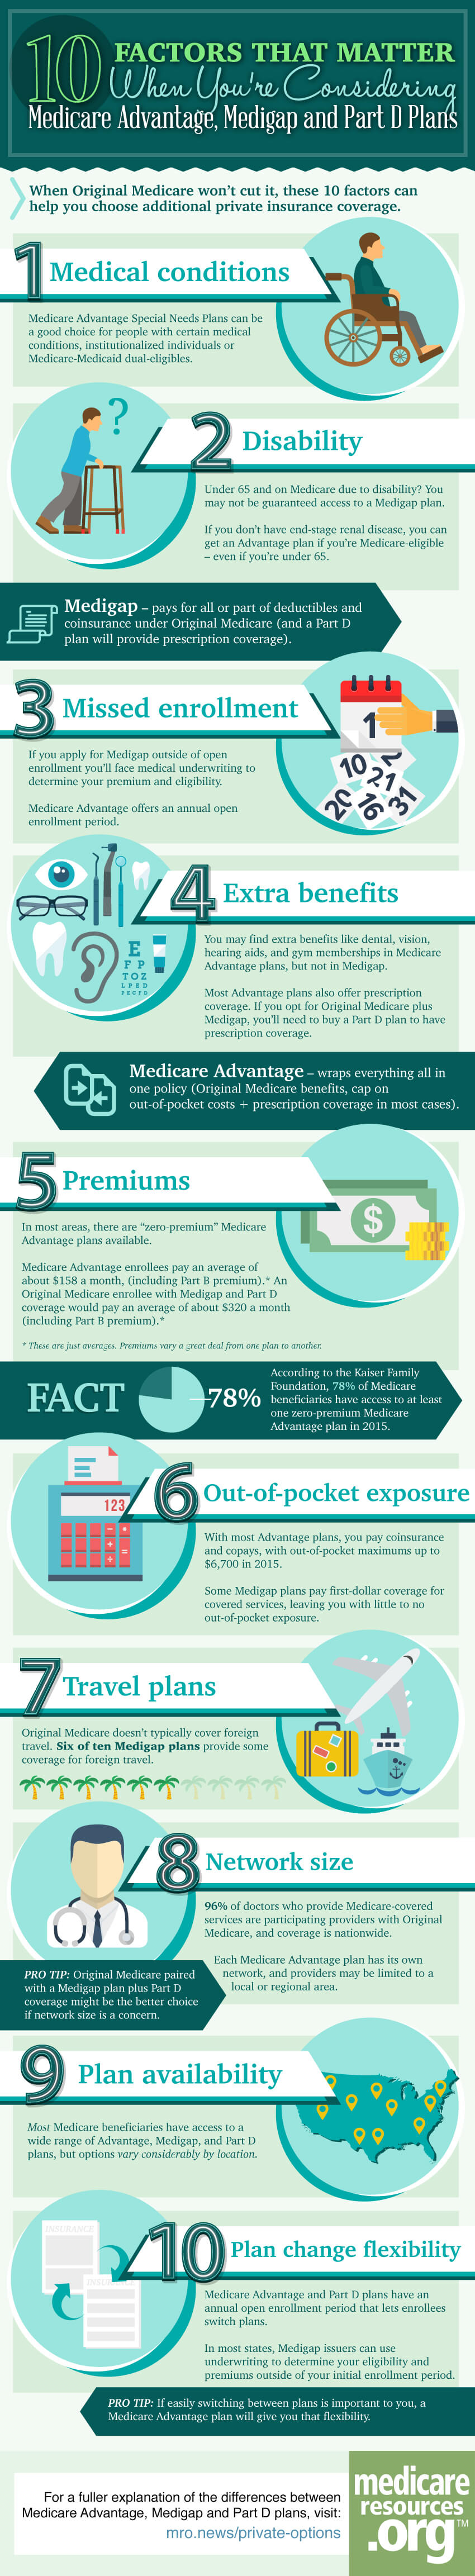 Medicare-private-plans-infographic